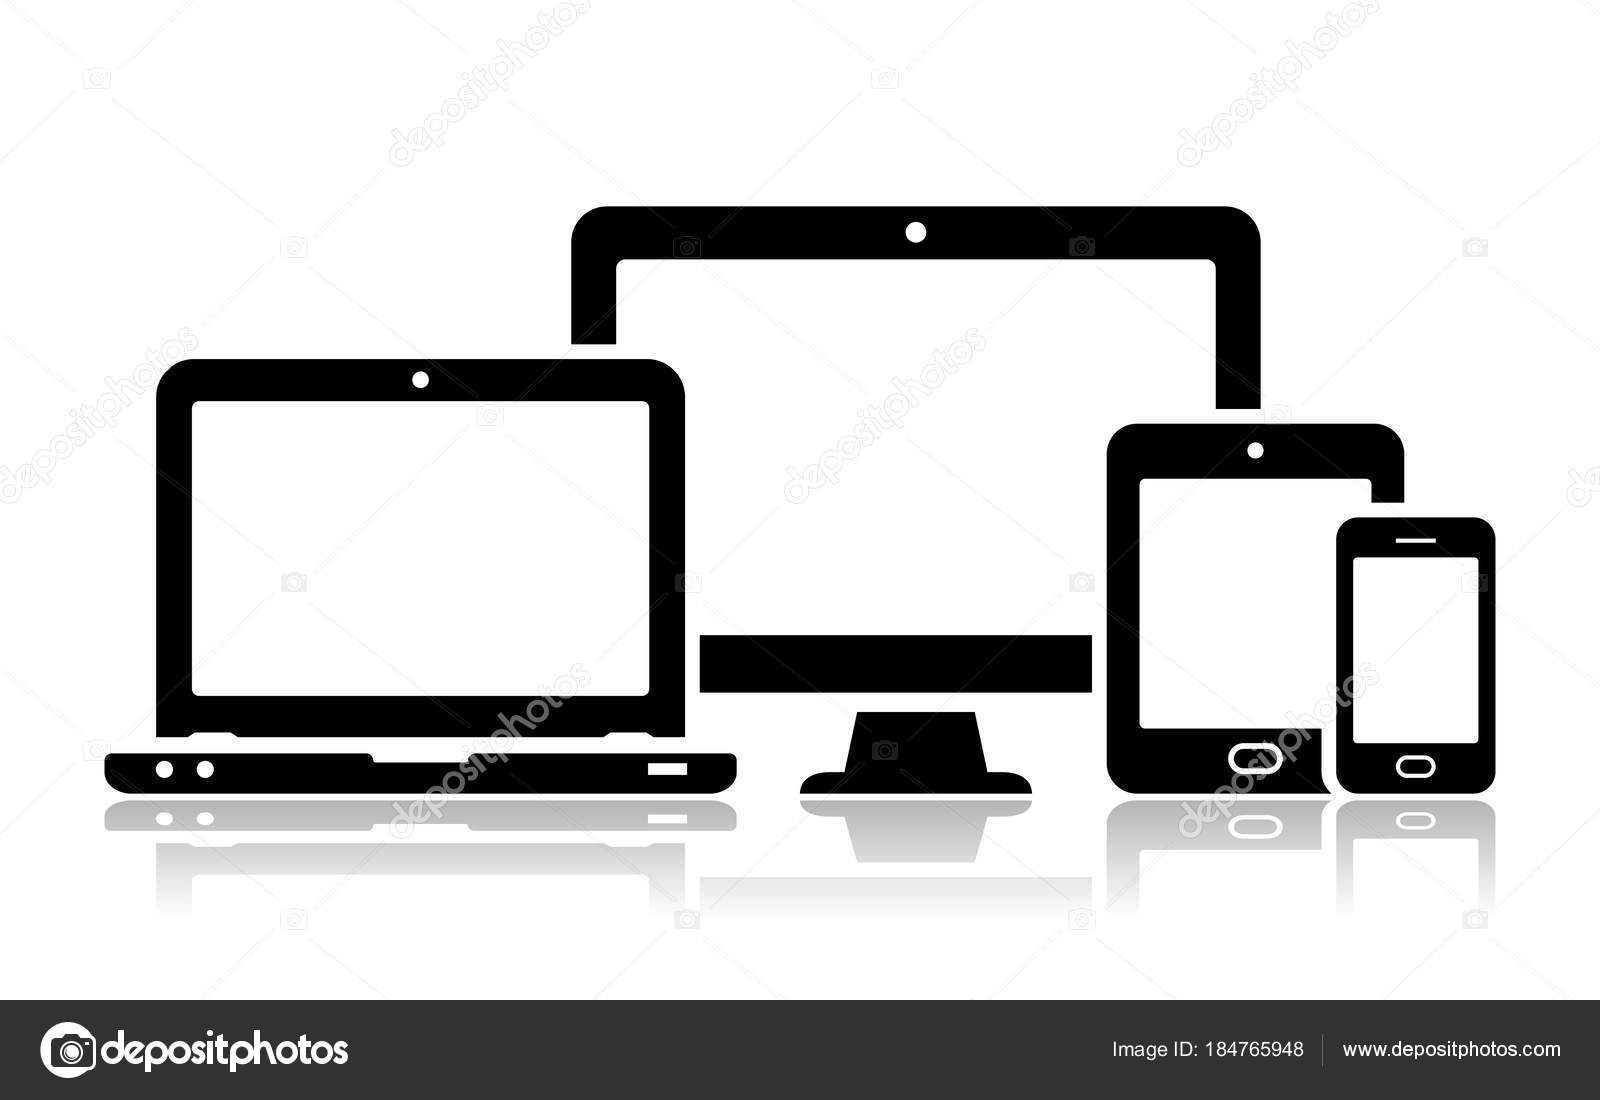 Mobile Phone, Tablet, Laptop And Desktop Computer Icons